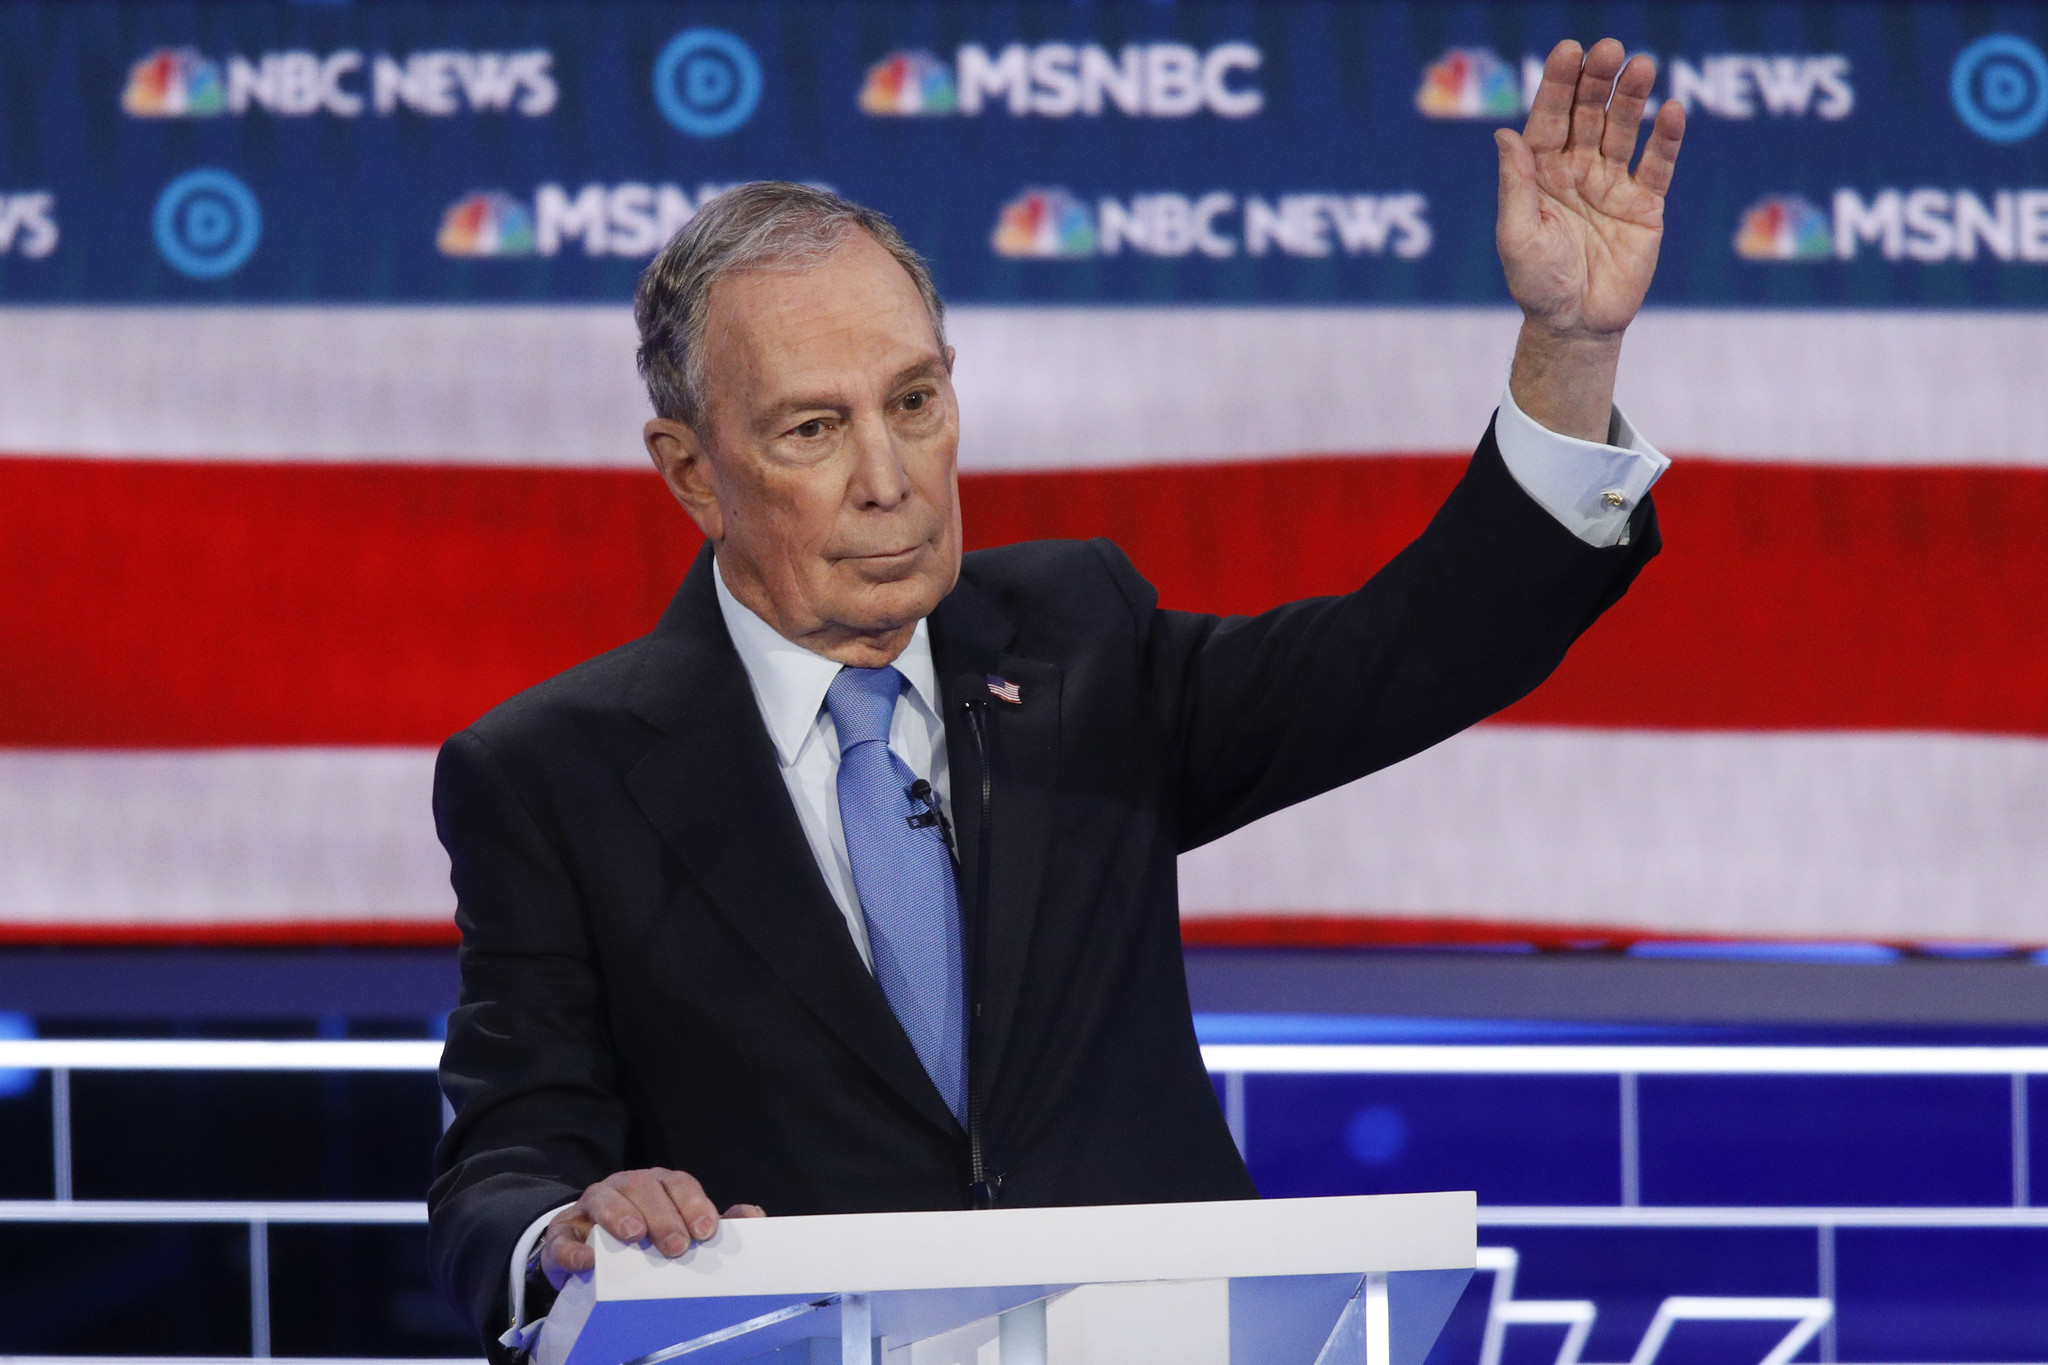 Here's a summary of the 2009 Daily News op-ed Michael Bloomberg mentioned at Wednesday's debate